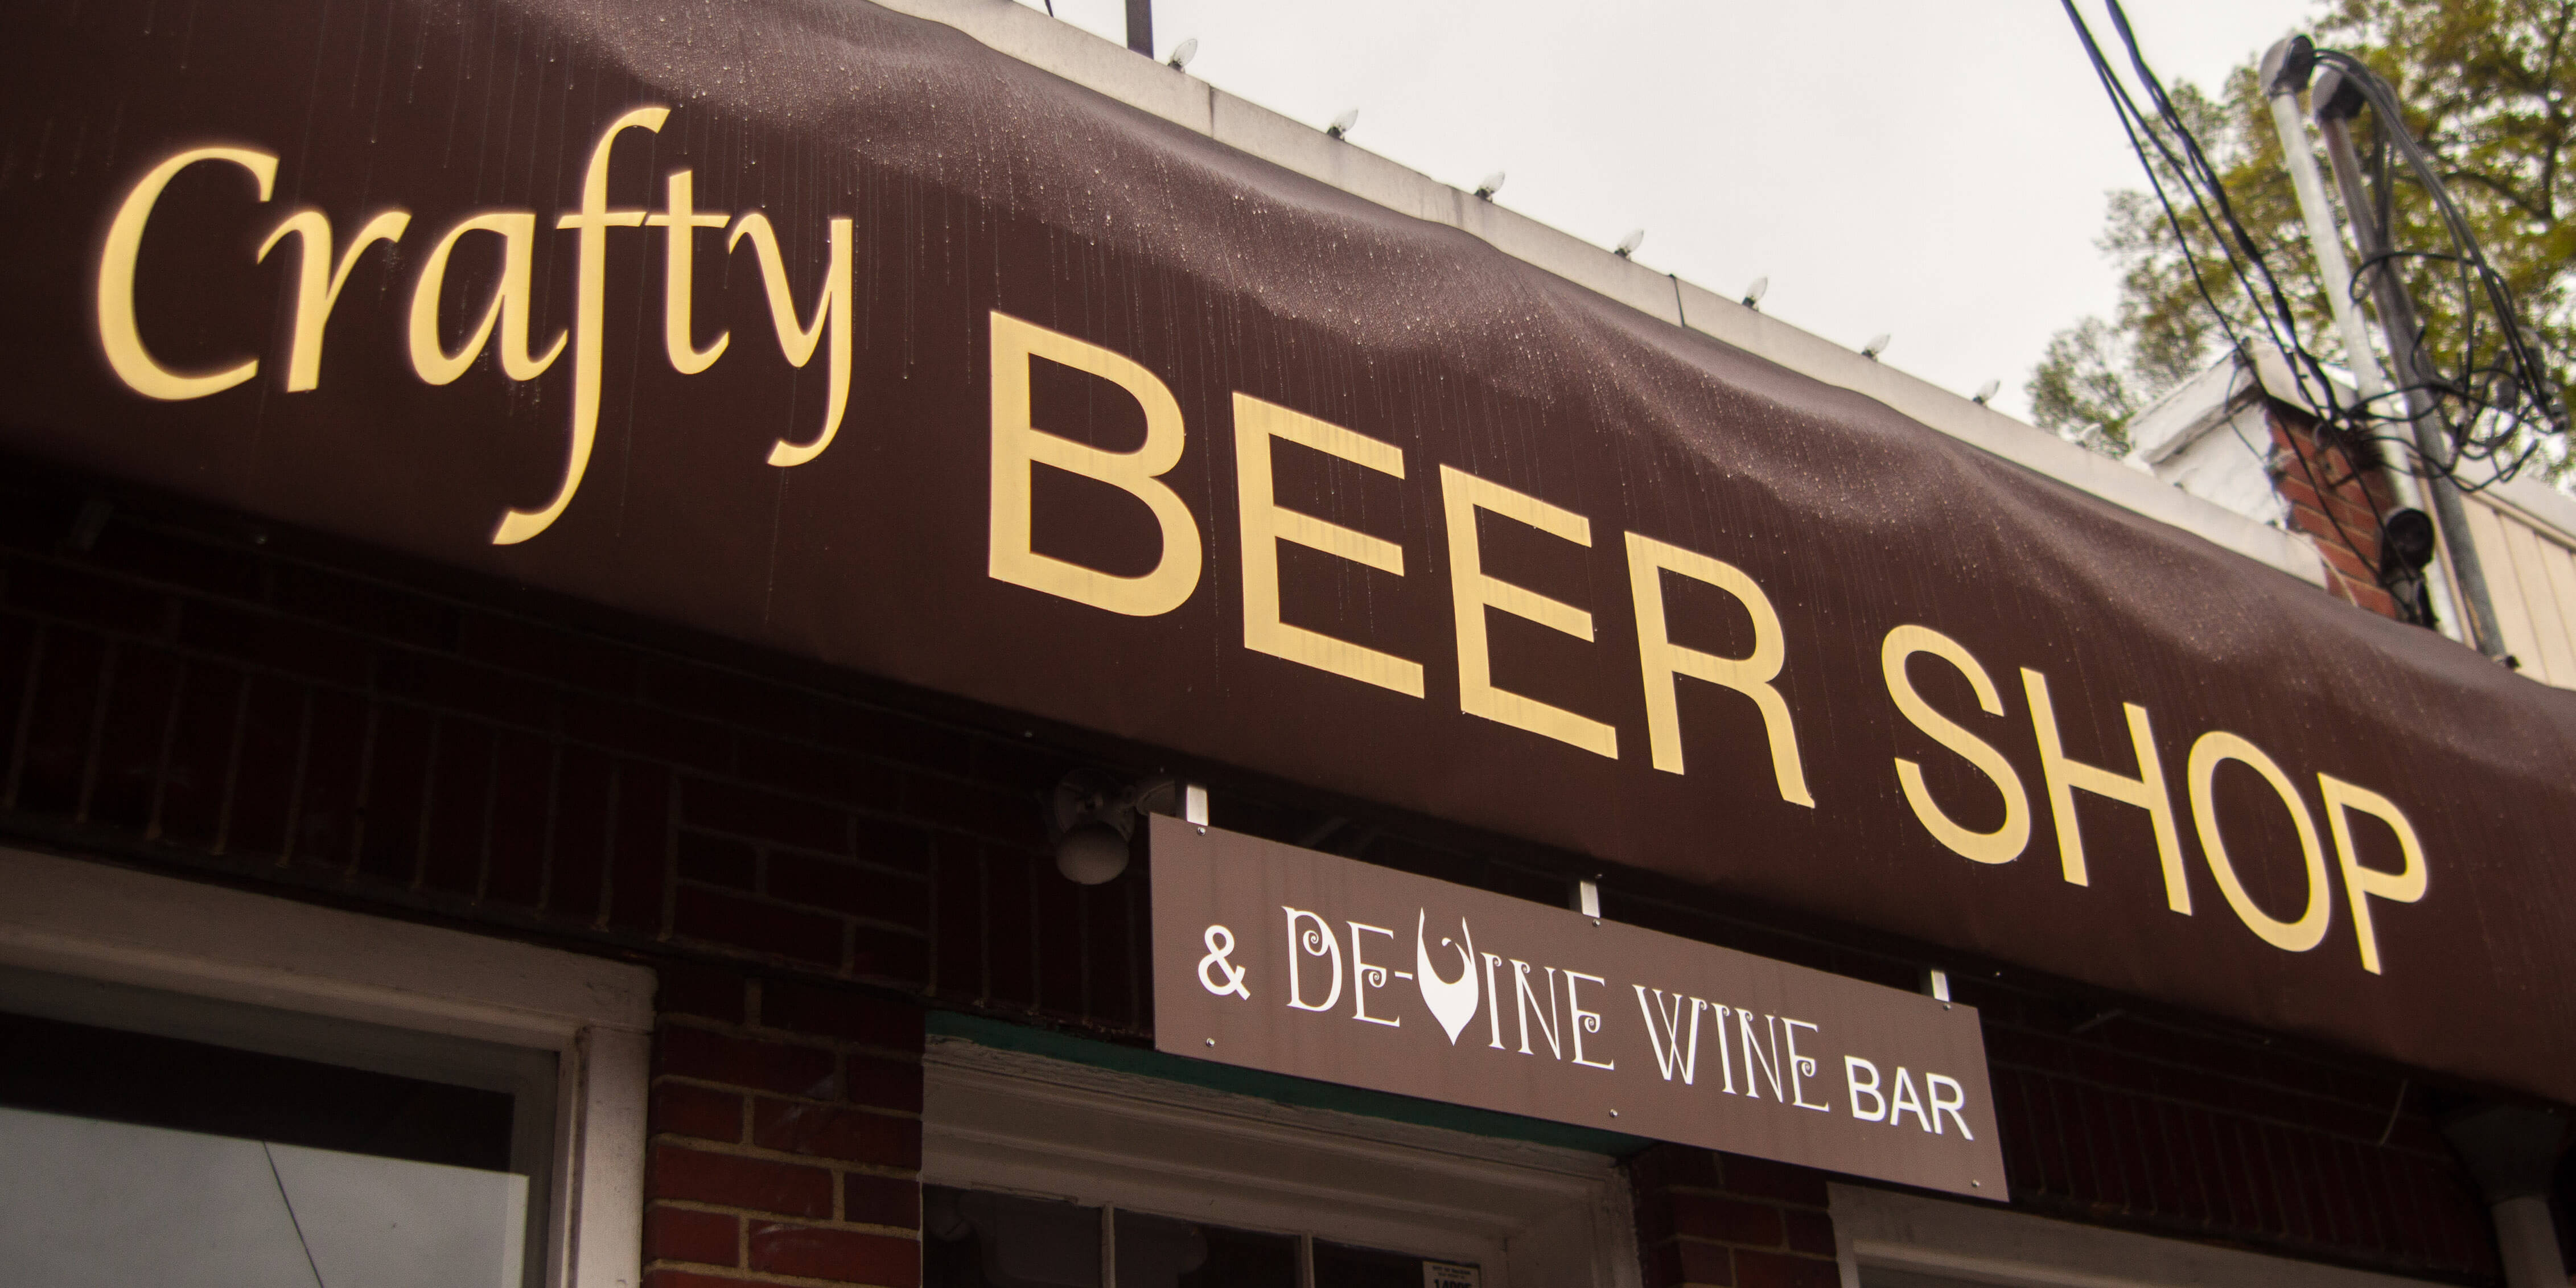 Sign at the front entrance of Crafty Beer Shop in Raleigh, North Carolina